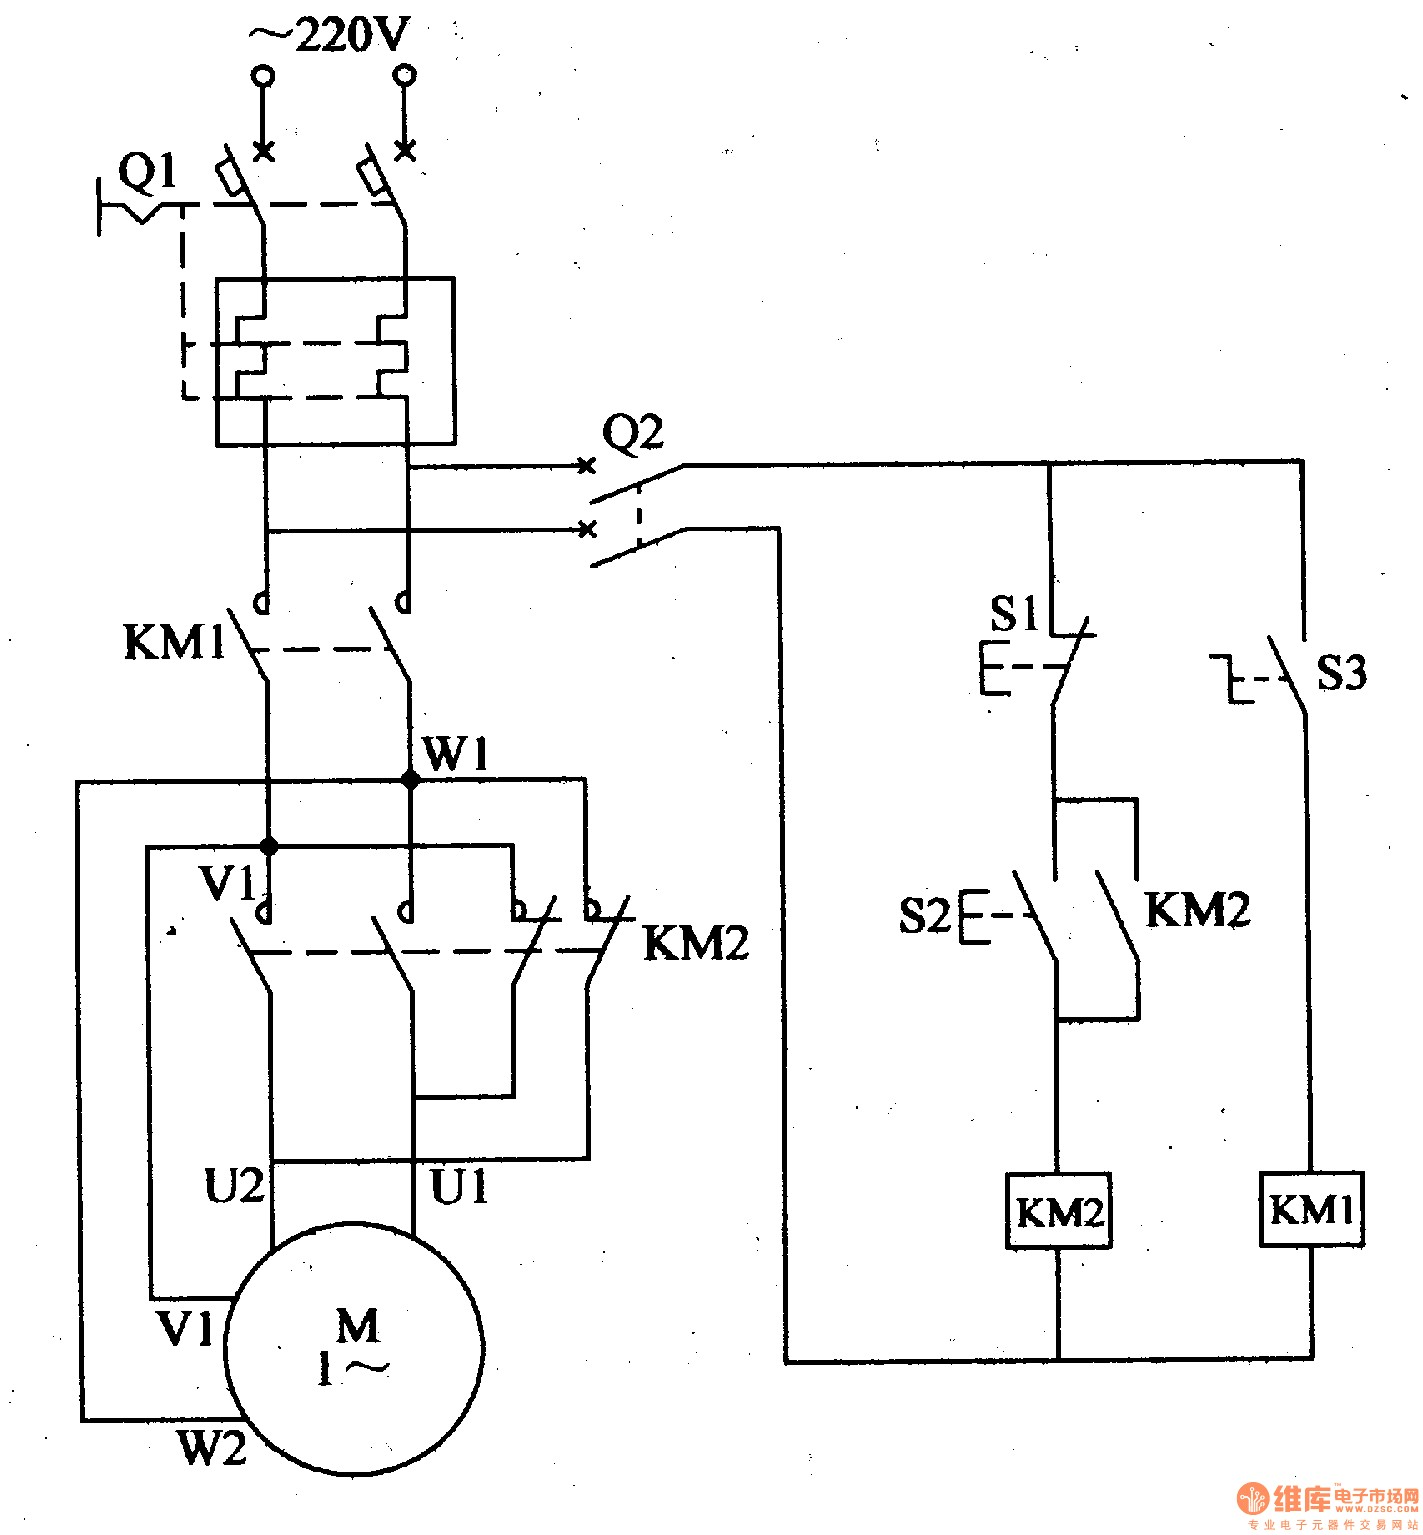 single phase motor starter wiring diagram unique wiring diagram image rh mainetreasurechest com 1 Phase Motor Wiring Diagrams Fan Motor Wiring Diagram 240V